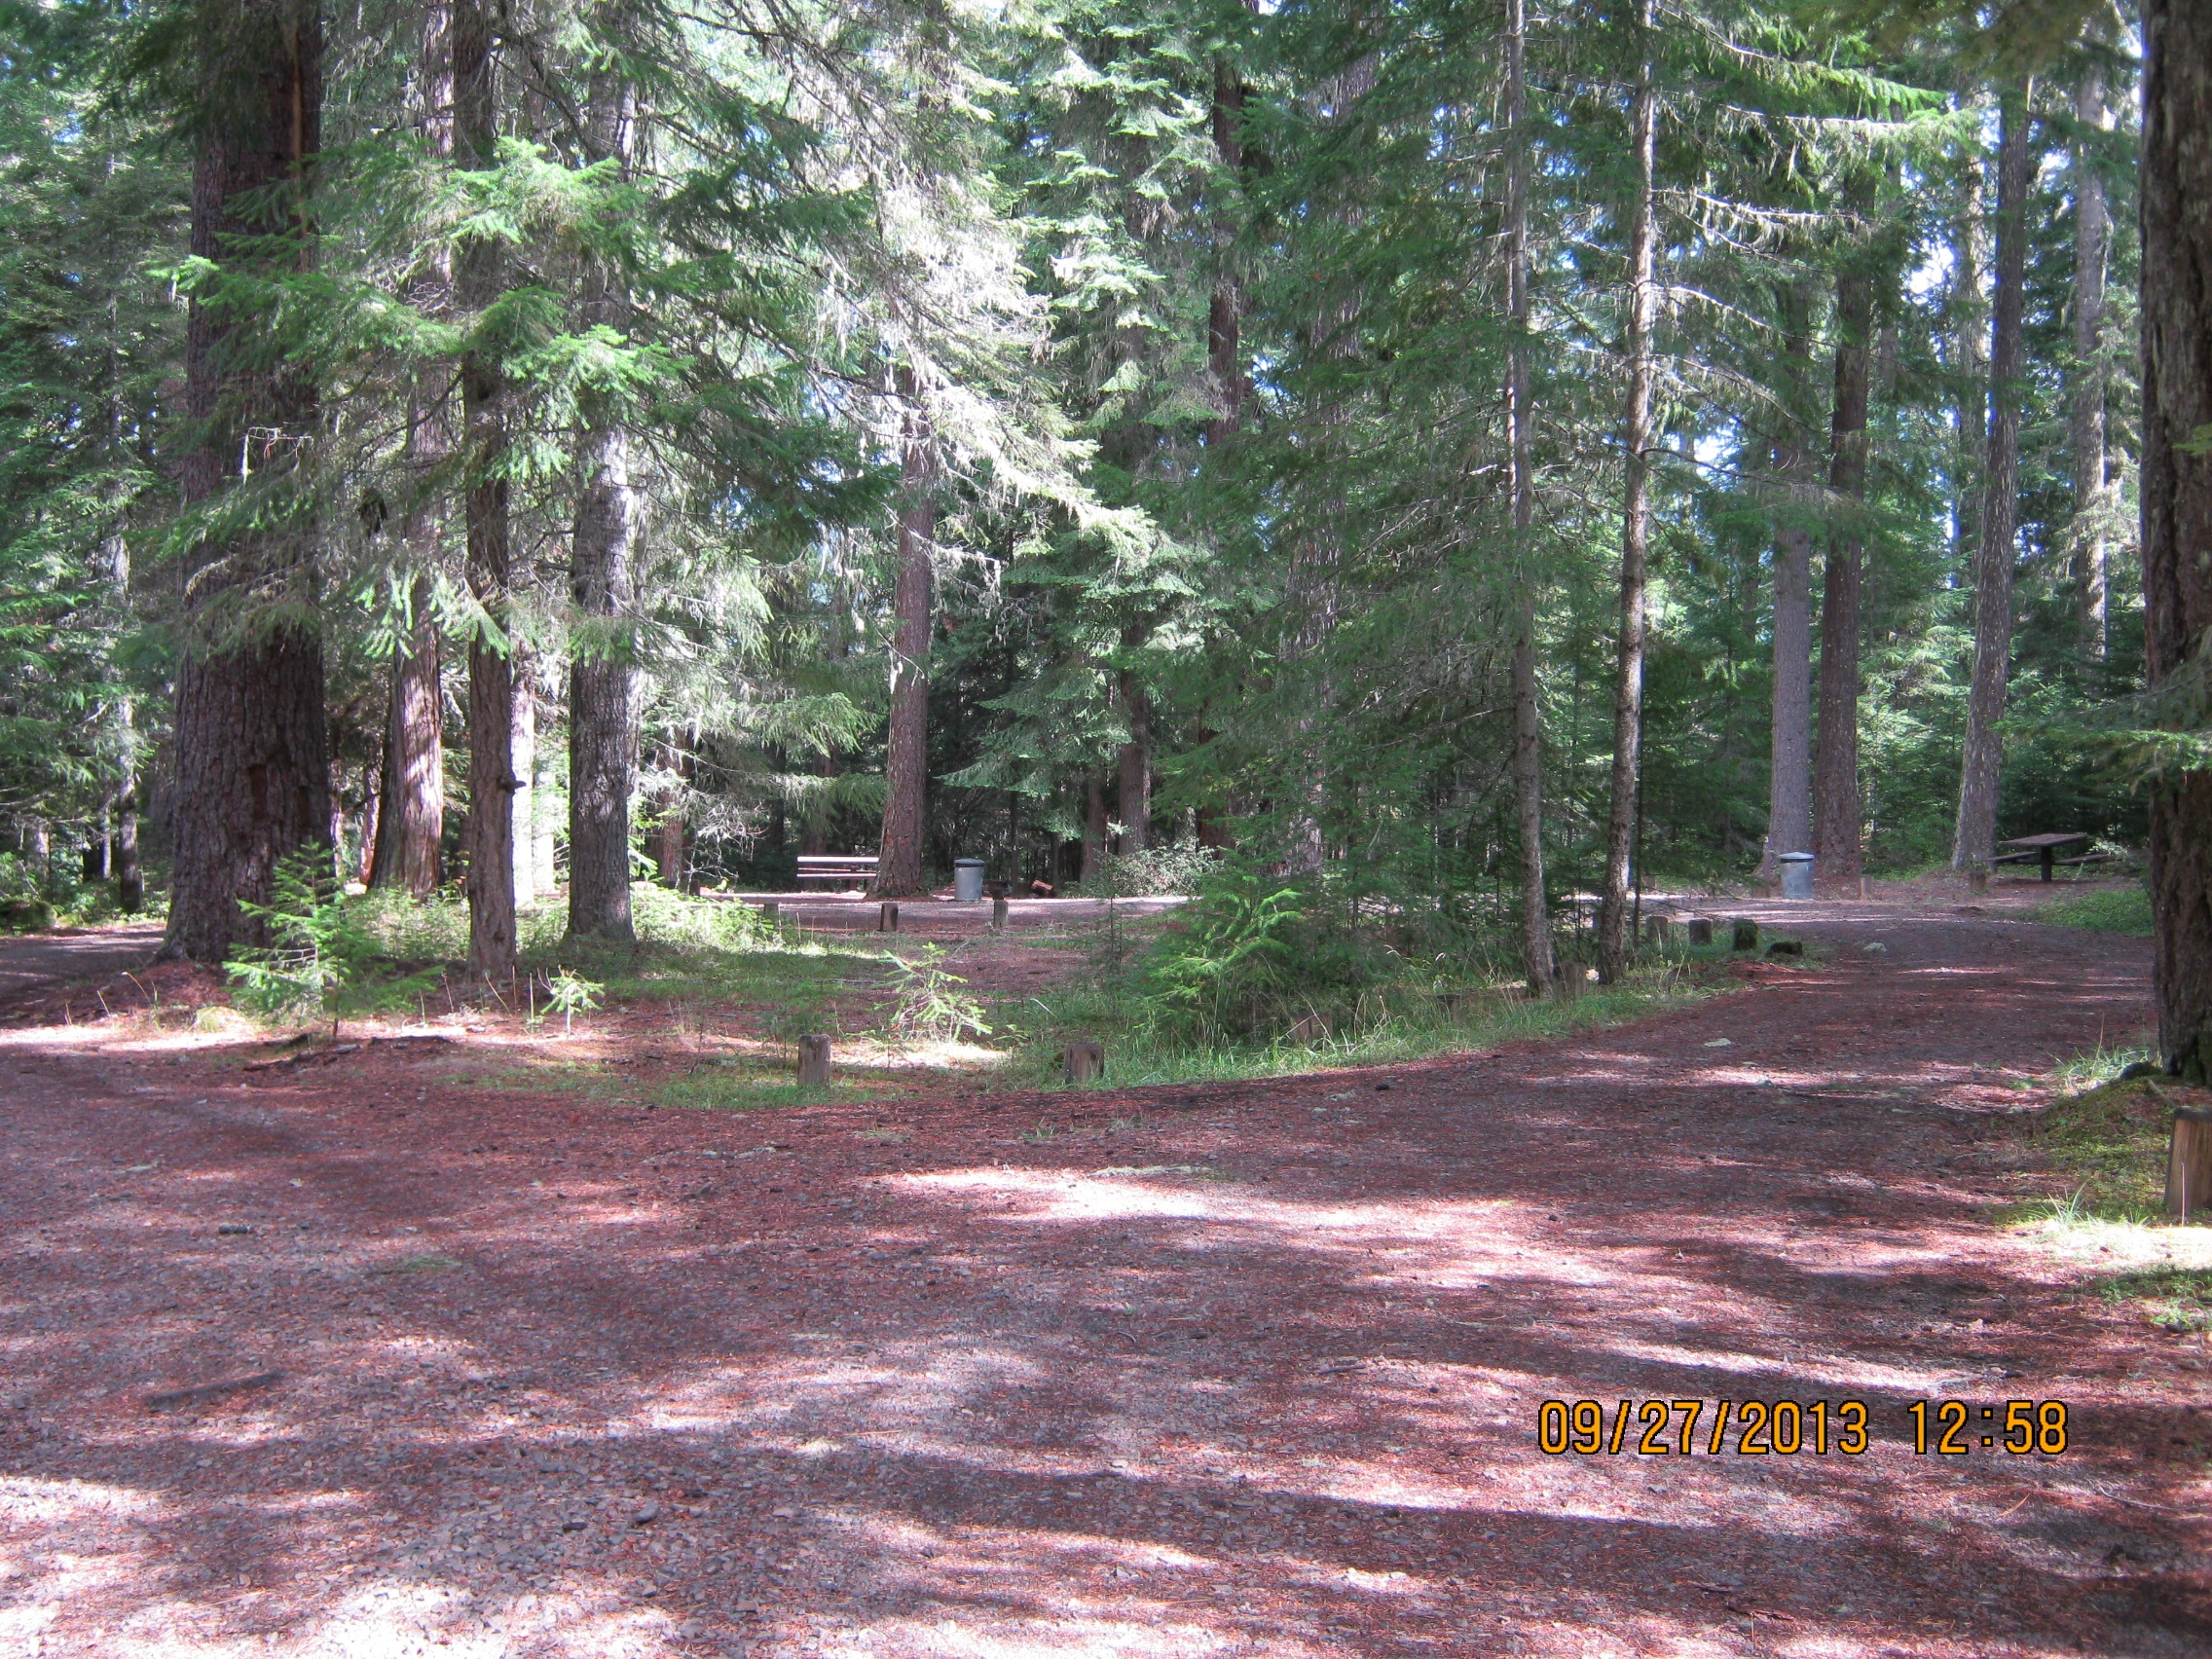 Threehorn Campground